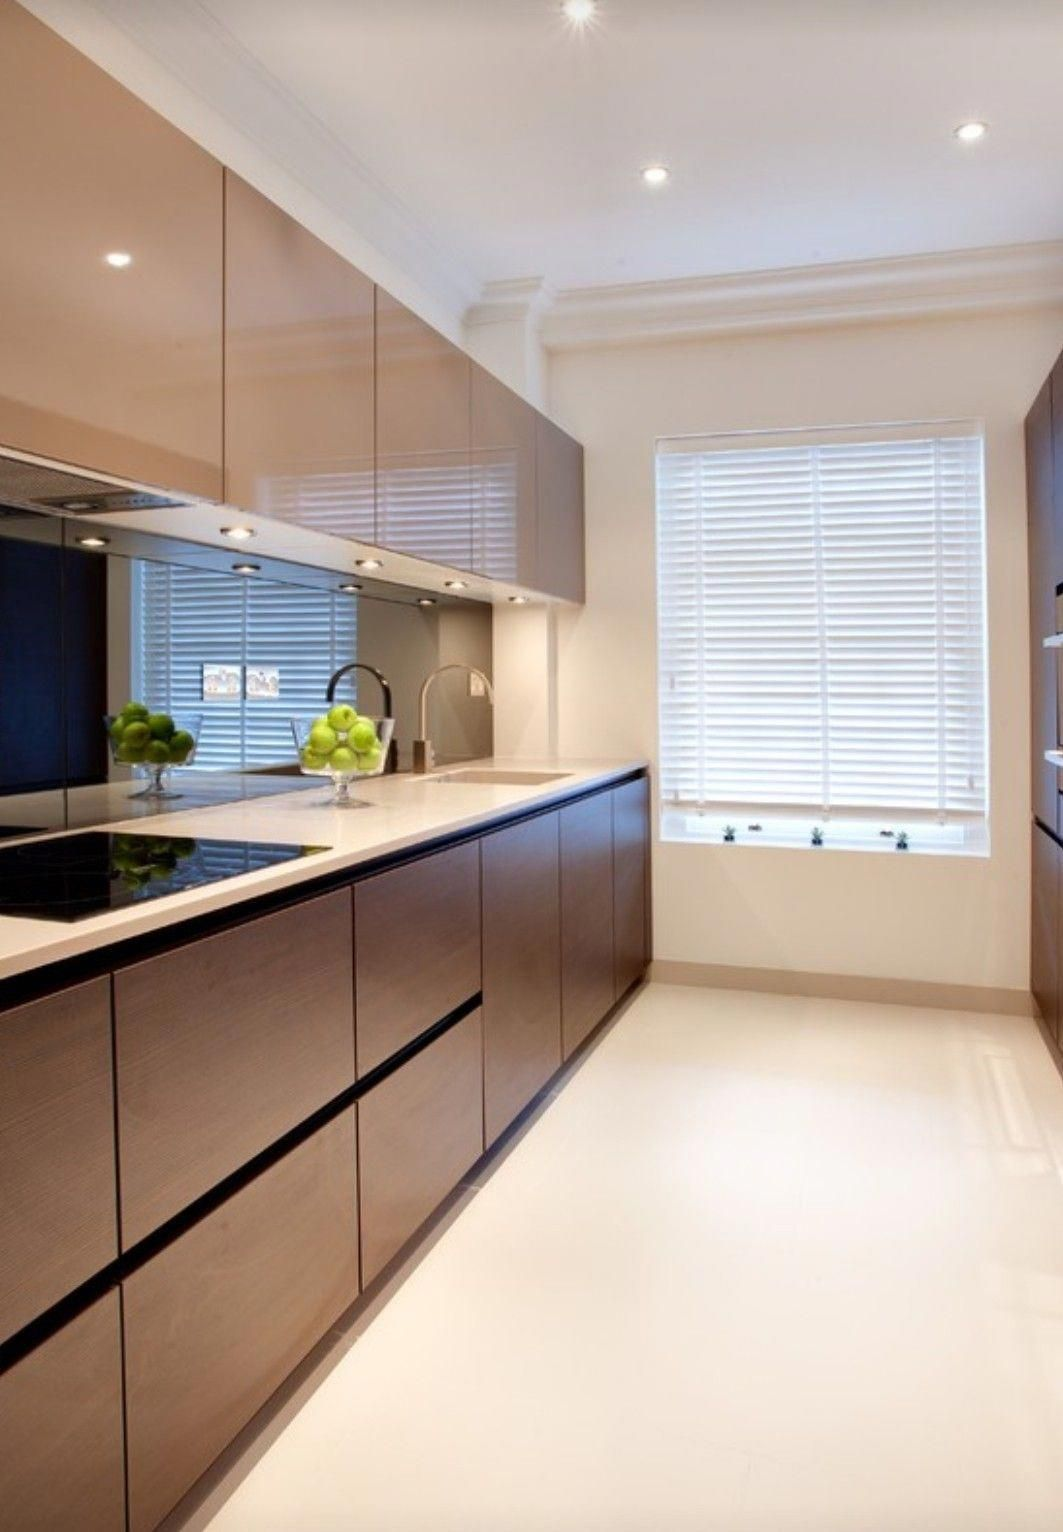 Show the very best kitchen floor covering ideas & pictures